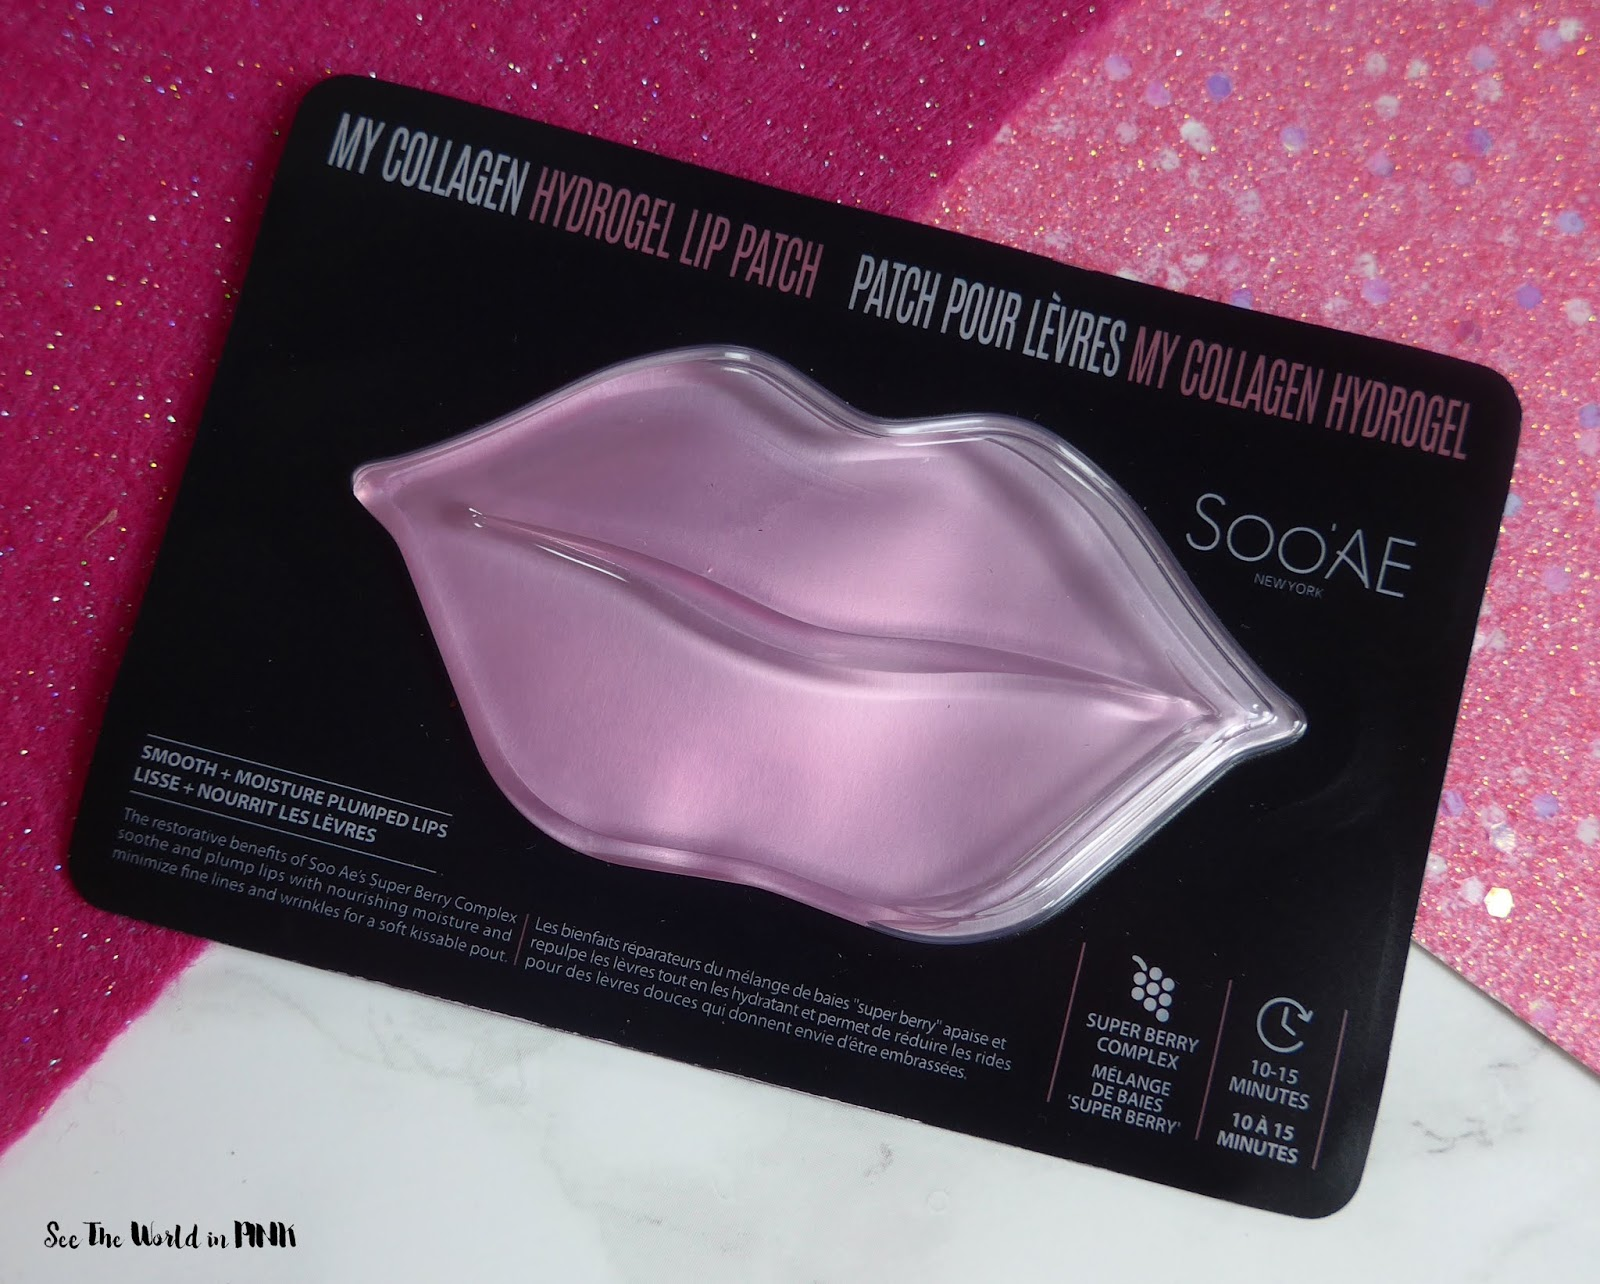 Skincare Sunday Week of Affordable K-Beauty Masks You Can Find at Walmart - SooAE Masks and iN.gredients